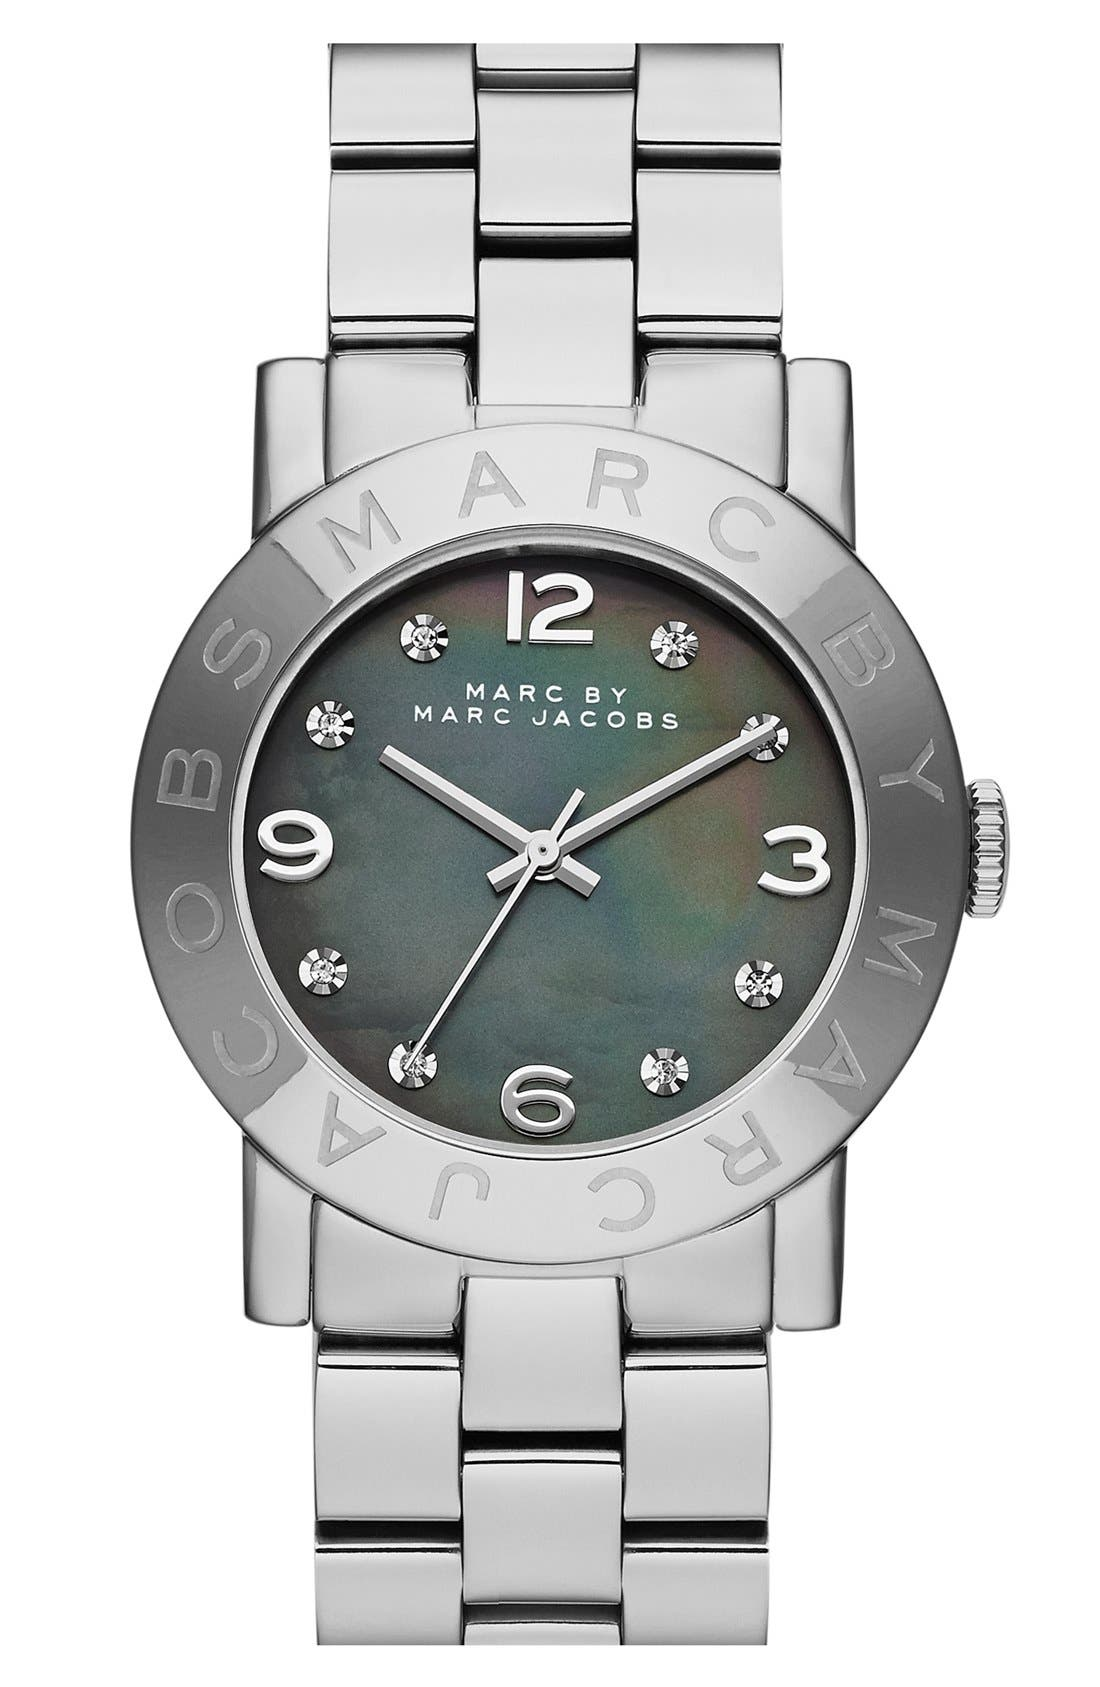 Alternate Image 1 Selected - MARC JACOBS 'Amy' Mother-of-Pearl Dial Watch, 37mm